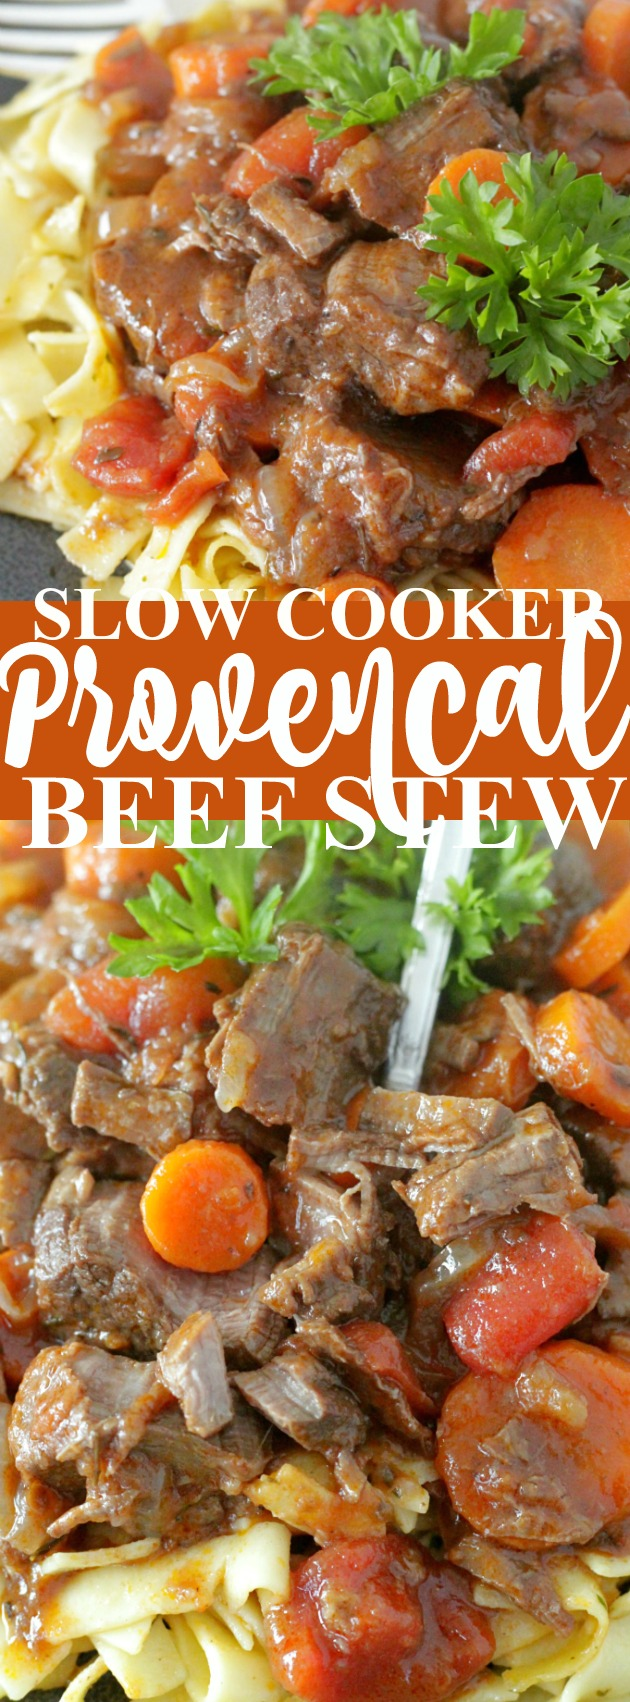 Slow Cooker Provencal Beef Stew